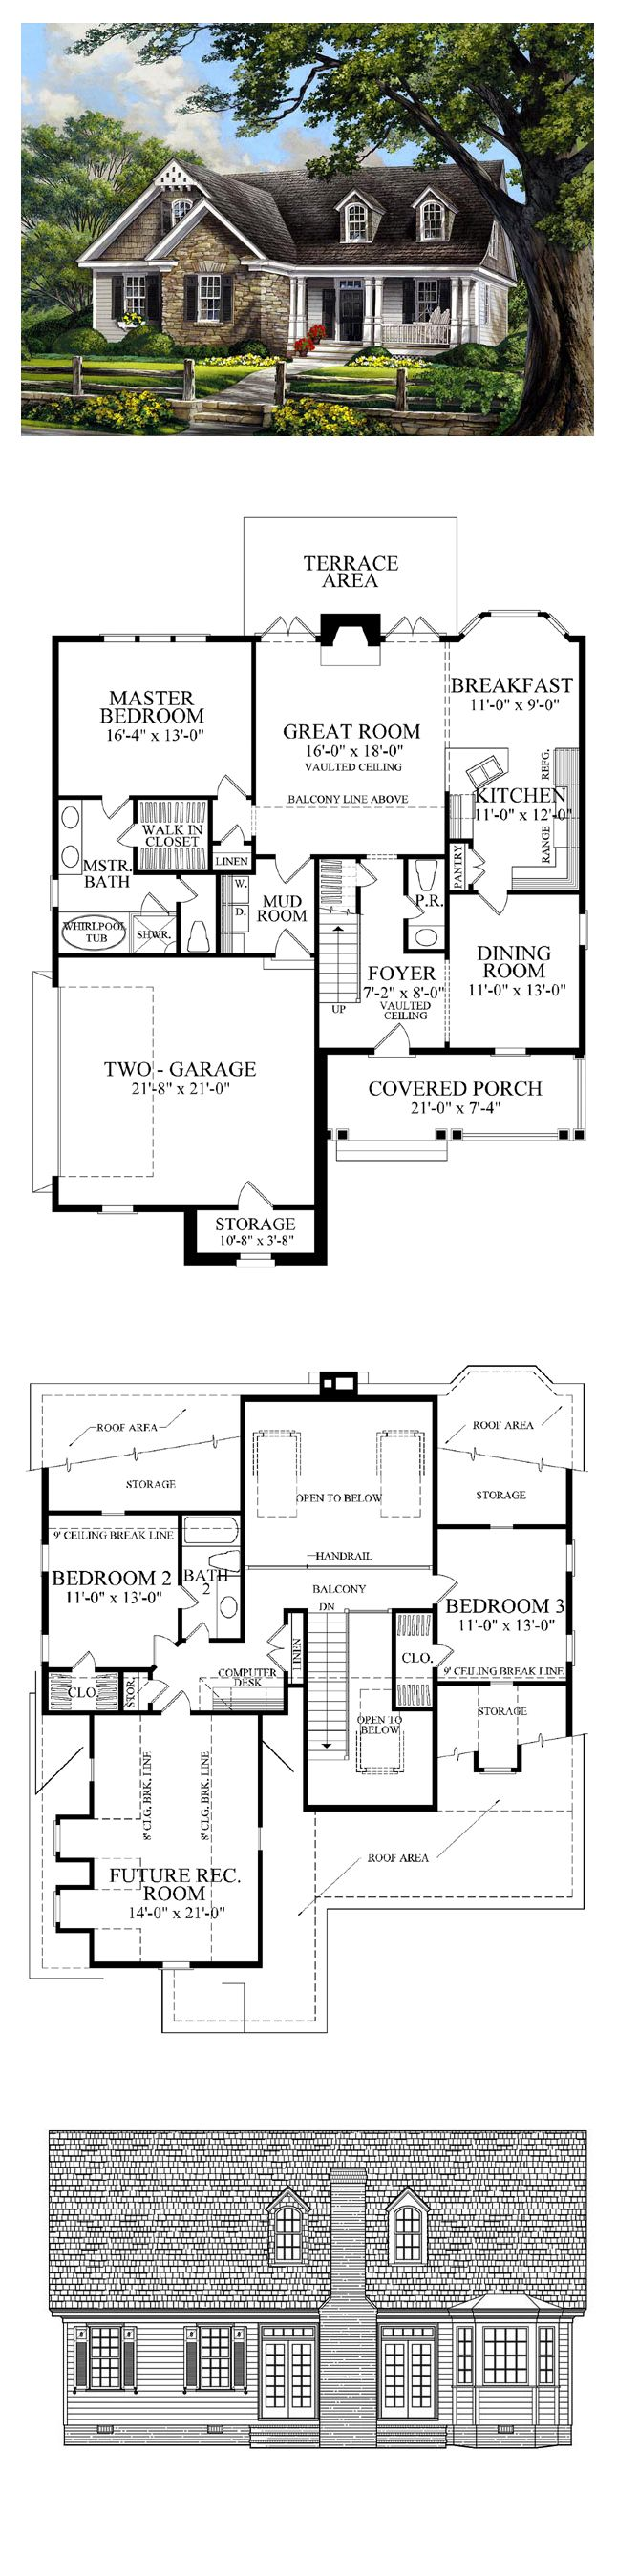 Best House Plans 2020 Country House Plans 86109 | Total Living Area: 2020 sq. ft., 3